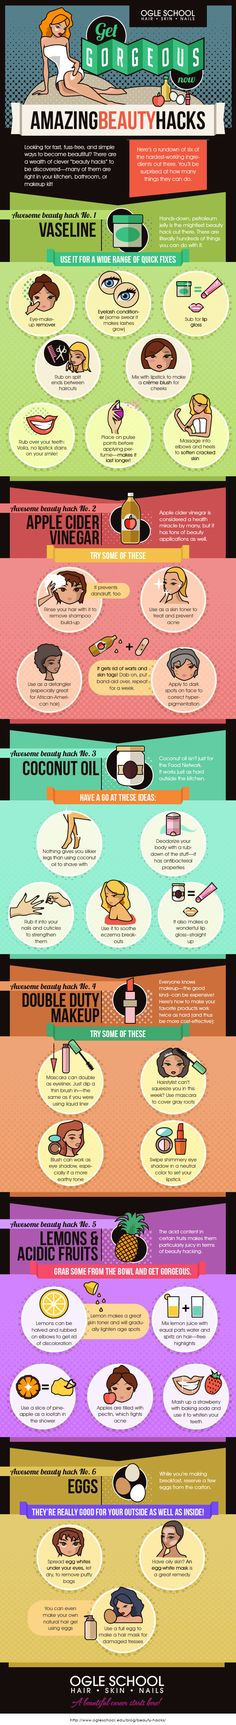 6 Amazing Beauty Hacks You Can Use Right Now. Check Yourself